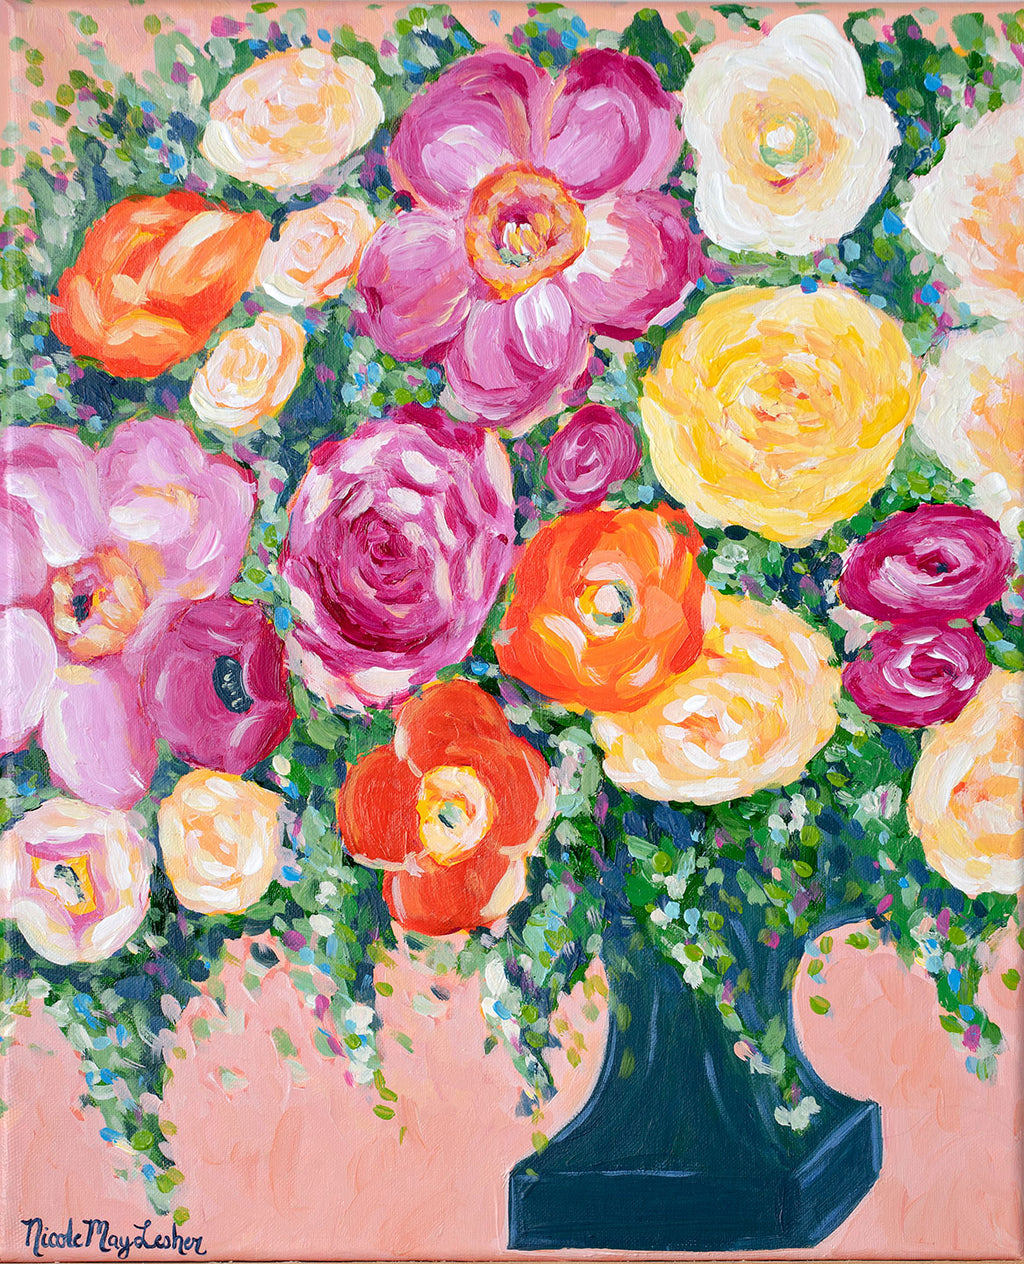 Sunday Brunch | Flower Arrangement Colorful Painting | Nicole May Lesher